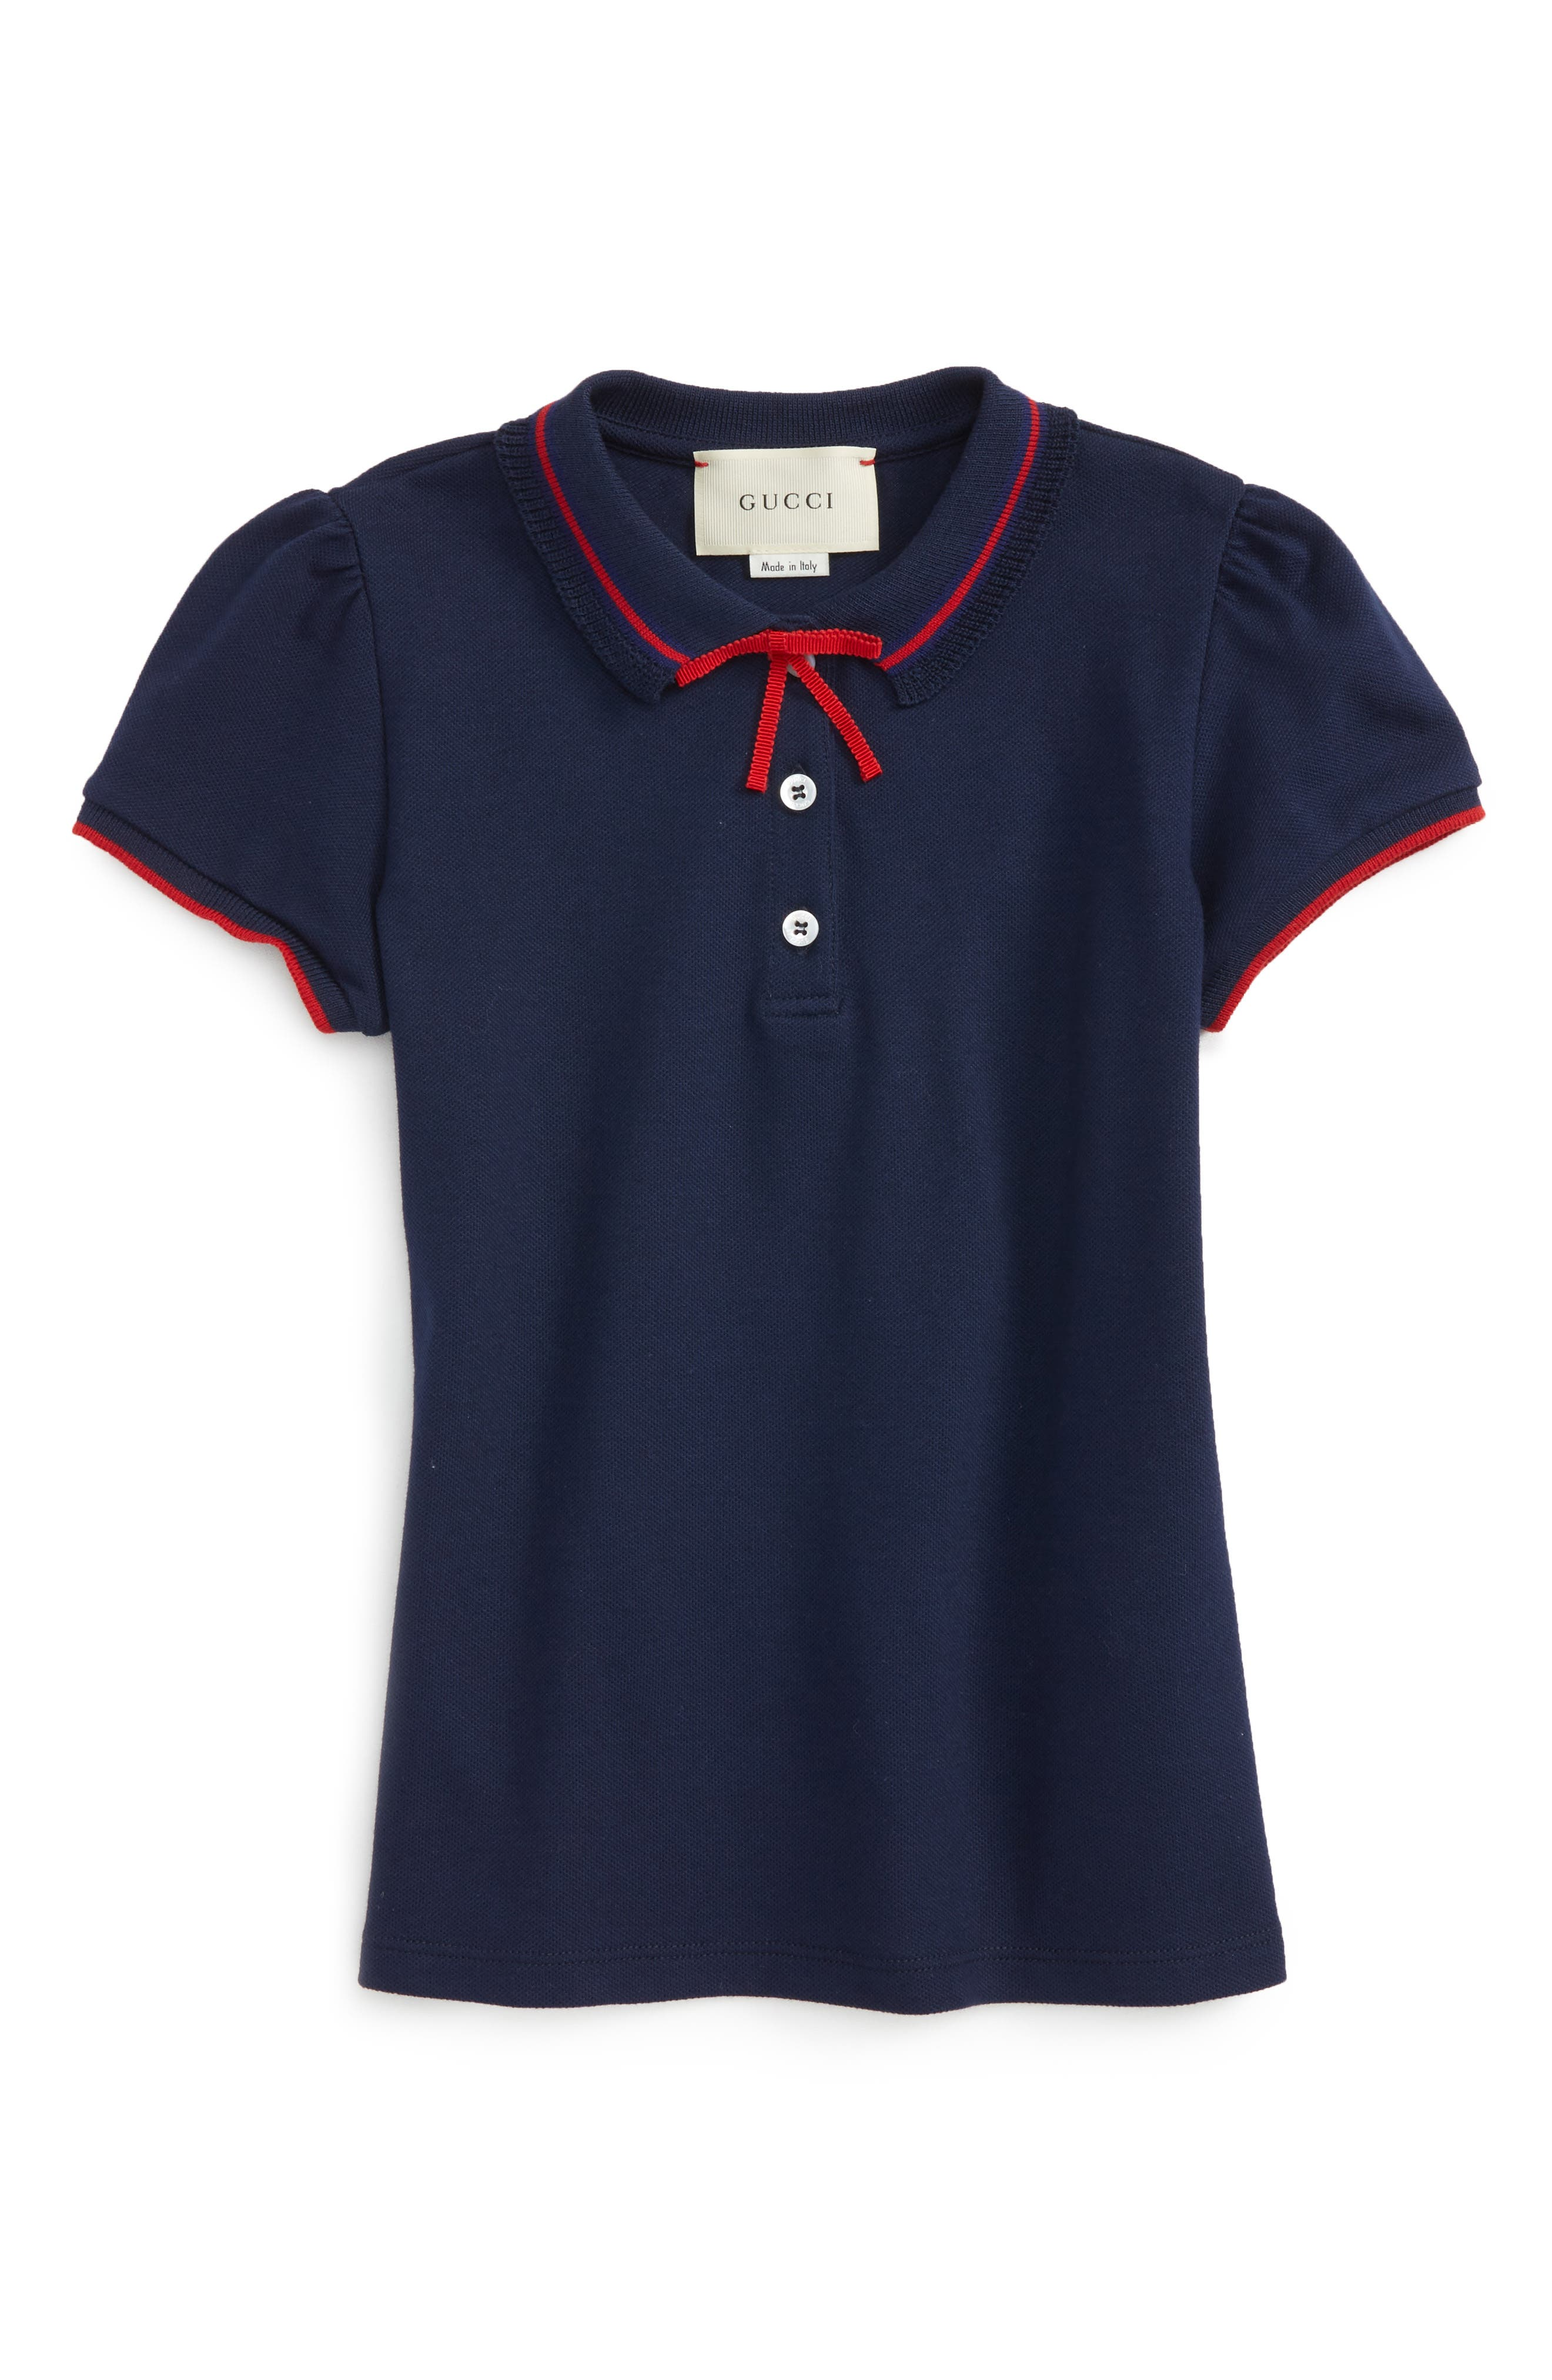 Alternate Image 1 Selected - Gucci Grosgrian Ribbon Polo (Little Girls & Big Girls)